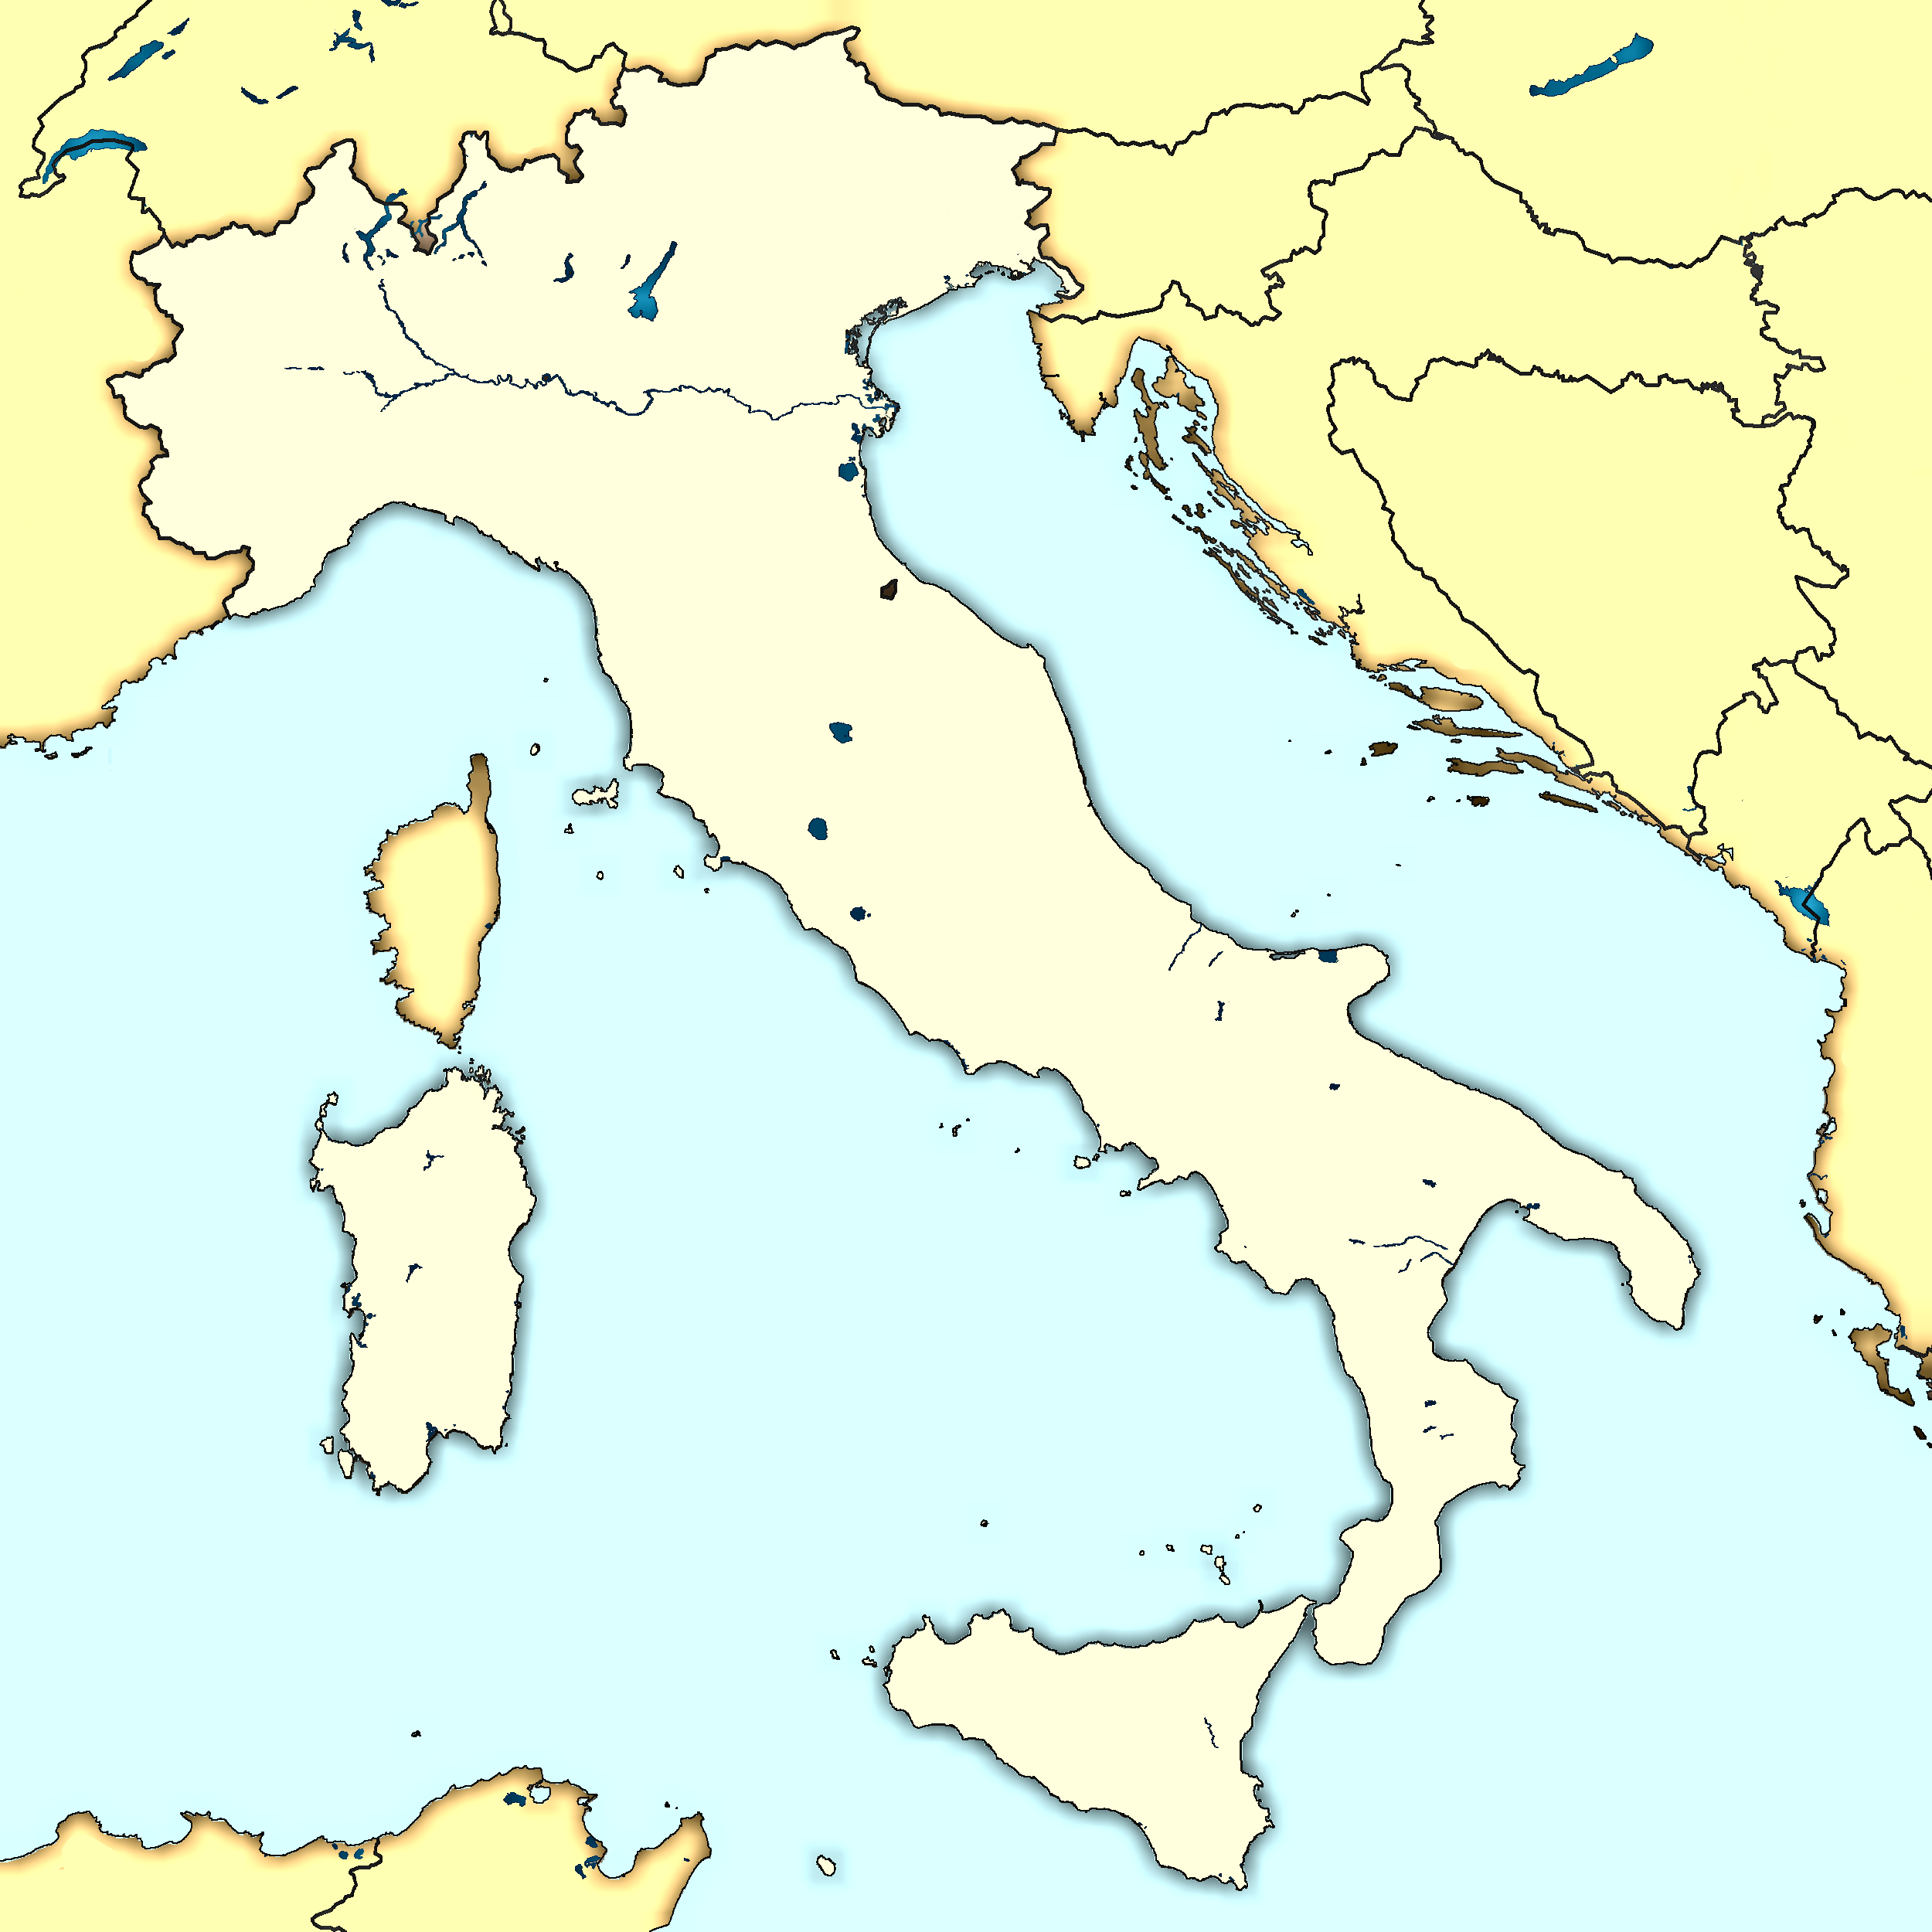 FileItaly map modernpng Italy Week Pinterest